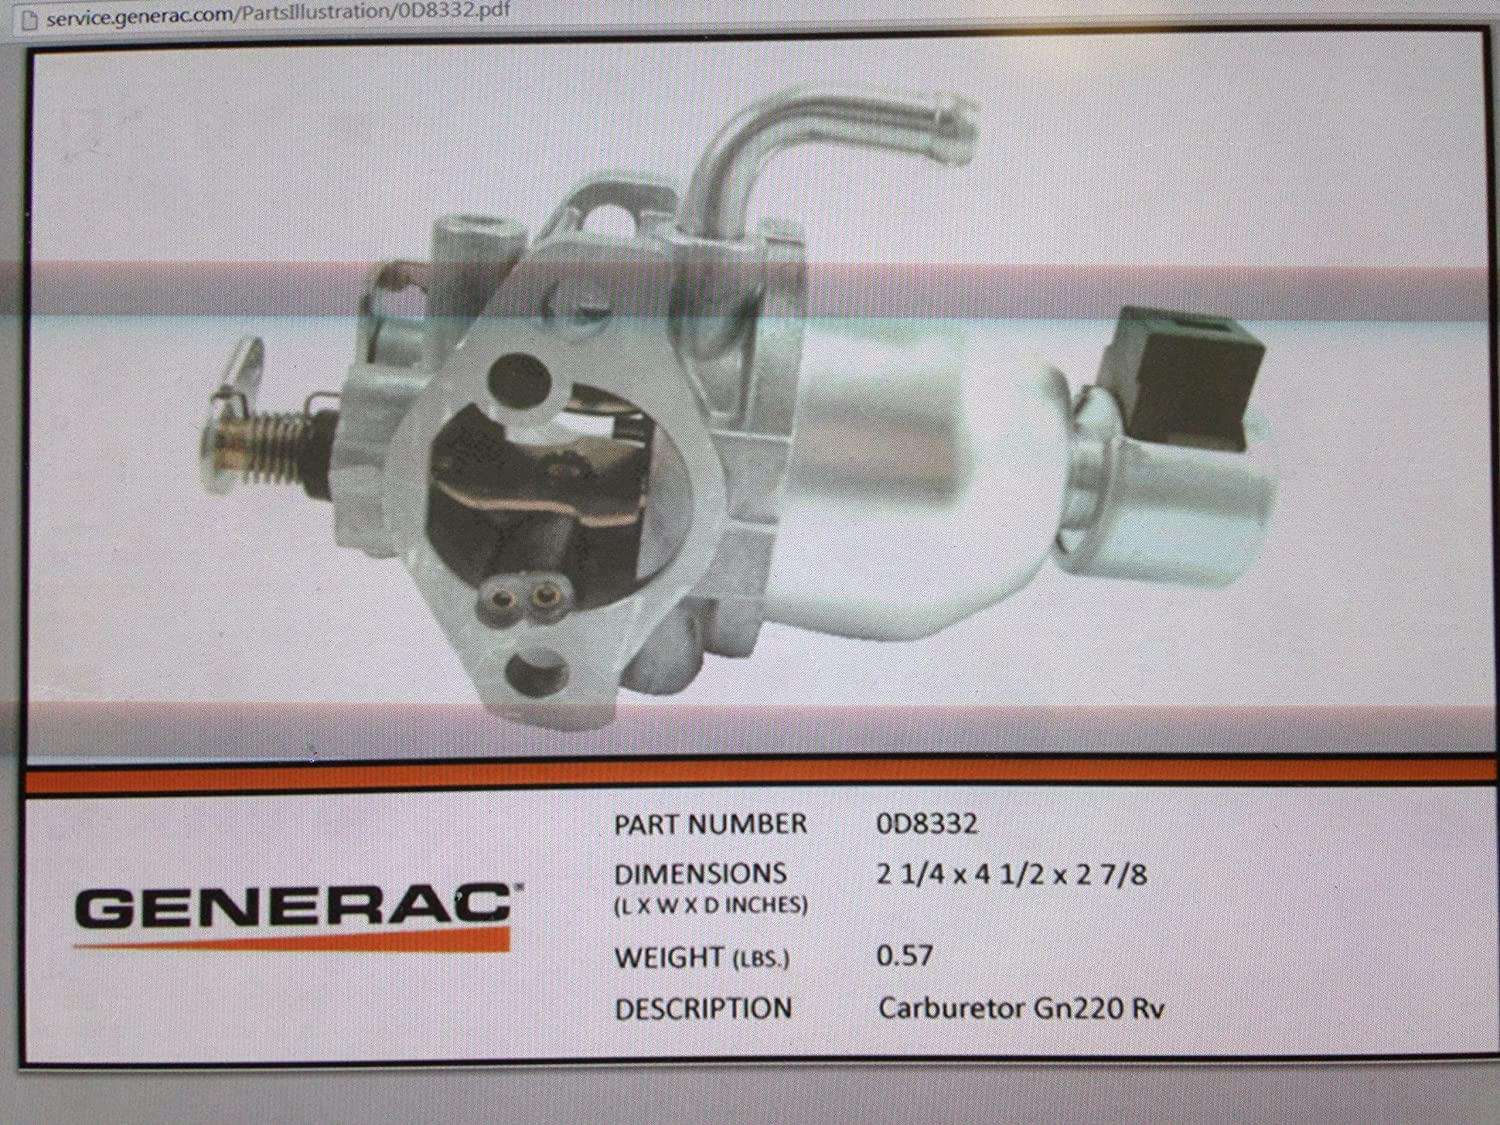 0D8332 - Generac Guardian GN220 RV carburetor (Discontinued by Manufacturer)